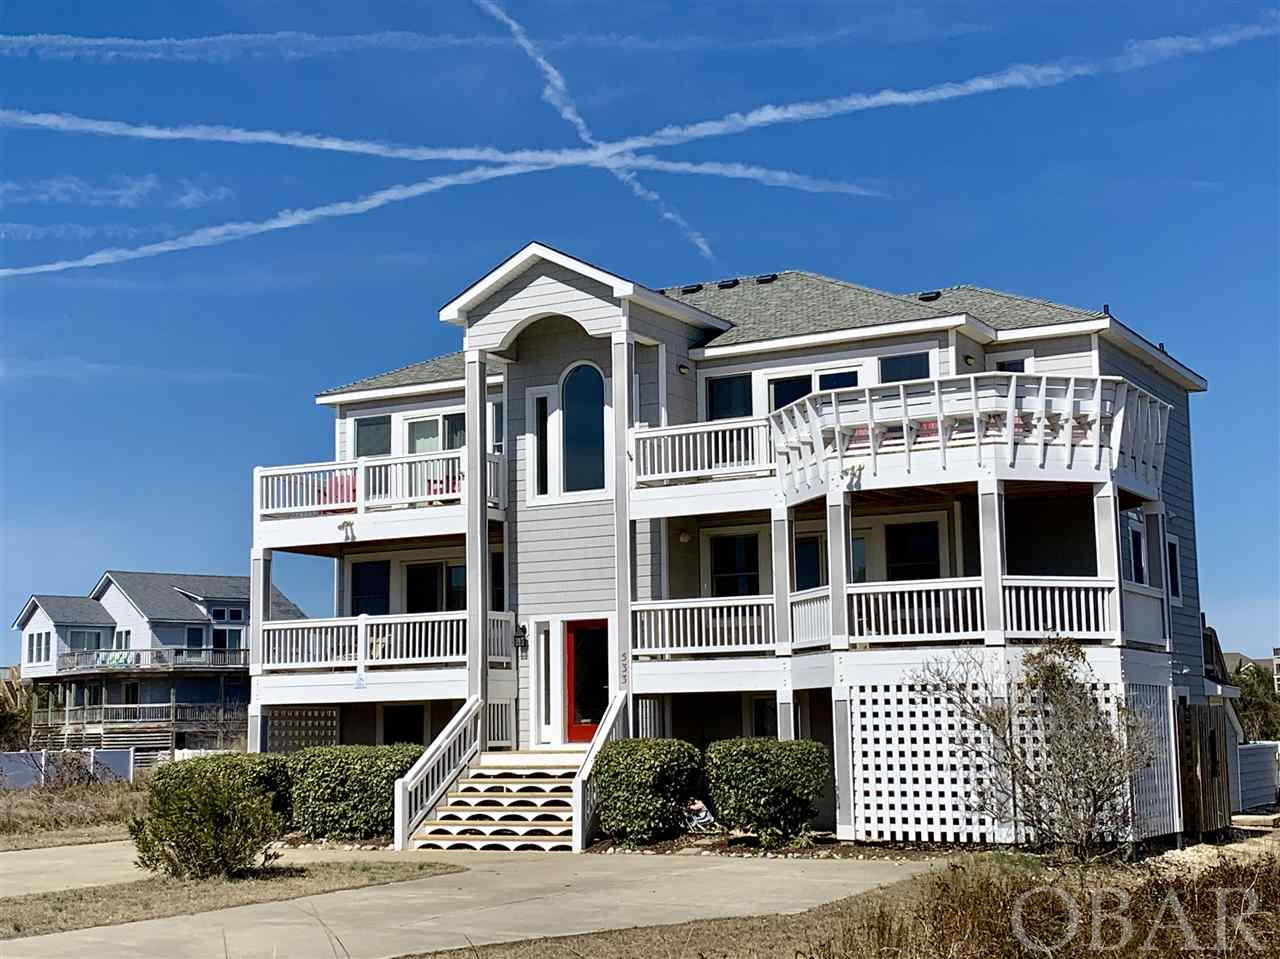 This impeccably maintained 8 bedroom, 8 1/2 bath home is located at the end of a quiet cul-de-sac in Section A of Ocean Sands which offers large homesites, a private uncrowded beach access and some of the widest beaches in Corolla. 7 bedrooms have attached bathrooms, 3 bedrooms have private decks, 2 living areas and a game room offer plenty of room to spread out. The pool and hot tub make this home a must see.  Updates include: 2019 -Air handler/heat pump, lower level; 2018 - bedroom tv's, dryer; 2017 - carpet, microwave; 2016 - top floor family room furniture & tv; 2014 - Refrigerator, stove/double oven; 2013 - Top level HVAC, washer; 2012 - 2 dishwashers ; 2010 - Hot tub, continuous flow hot water heater